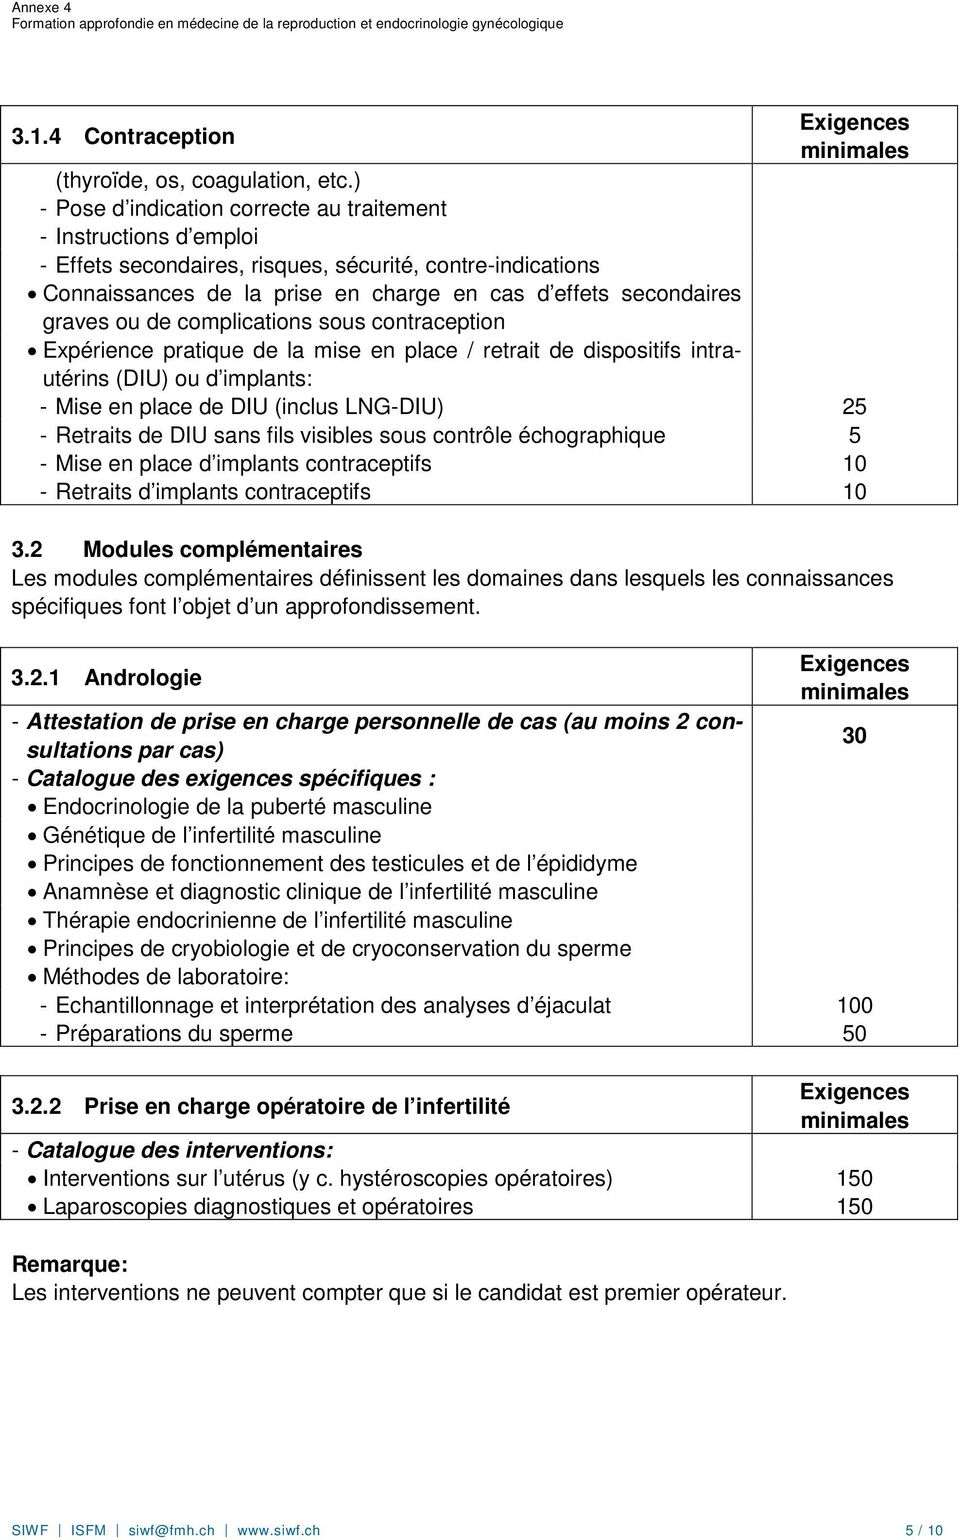 ou de complications sous contraception Expérience pratique de la mise en place / retrait de dispositifs intrautérins (DIU) ou d implants: - Mise en place de DIU (inclus LNG-DIU) 25 - Retraits de DIU